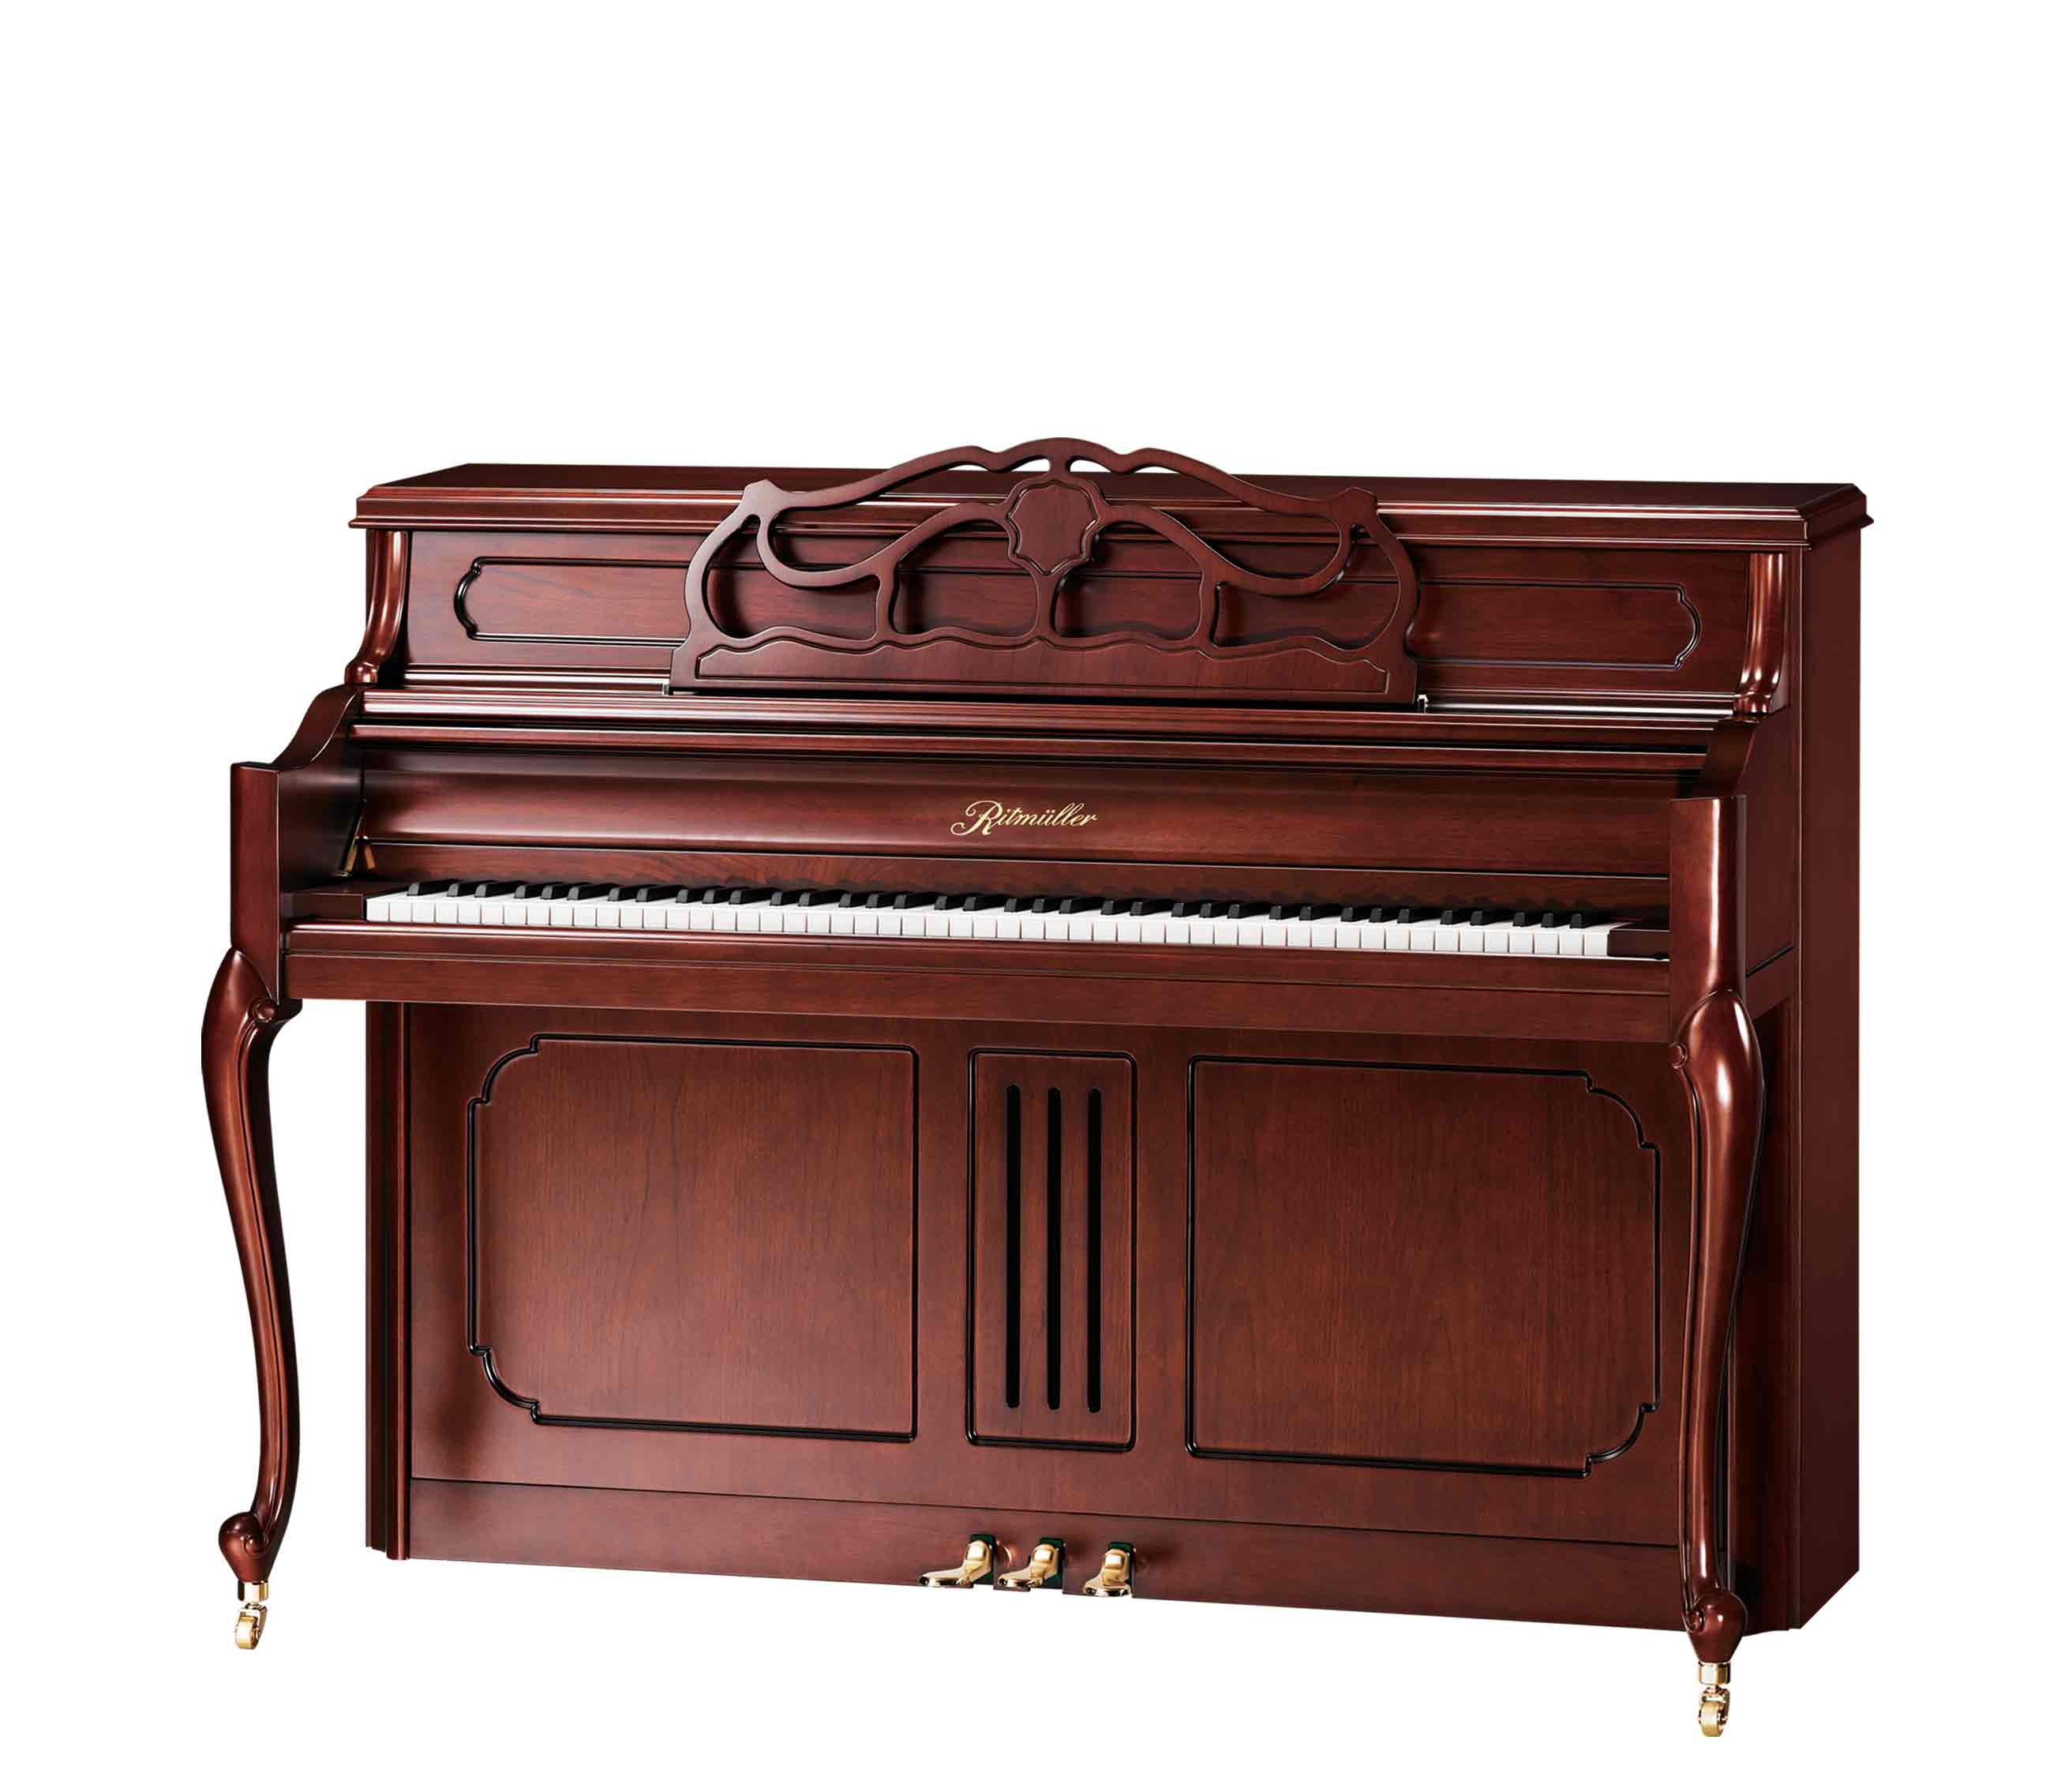 Ritmüller UP110RB French Provincial upright piano in Cherry Satin finish